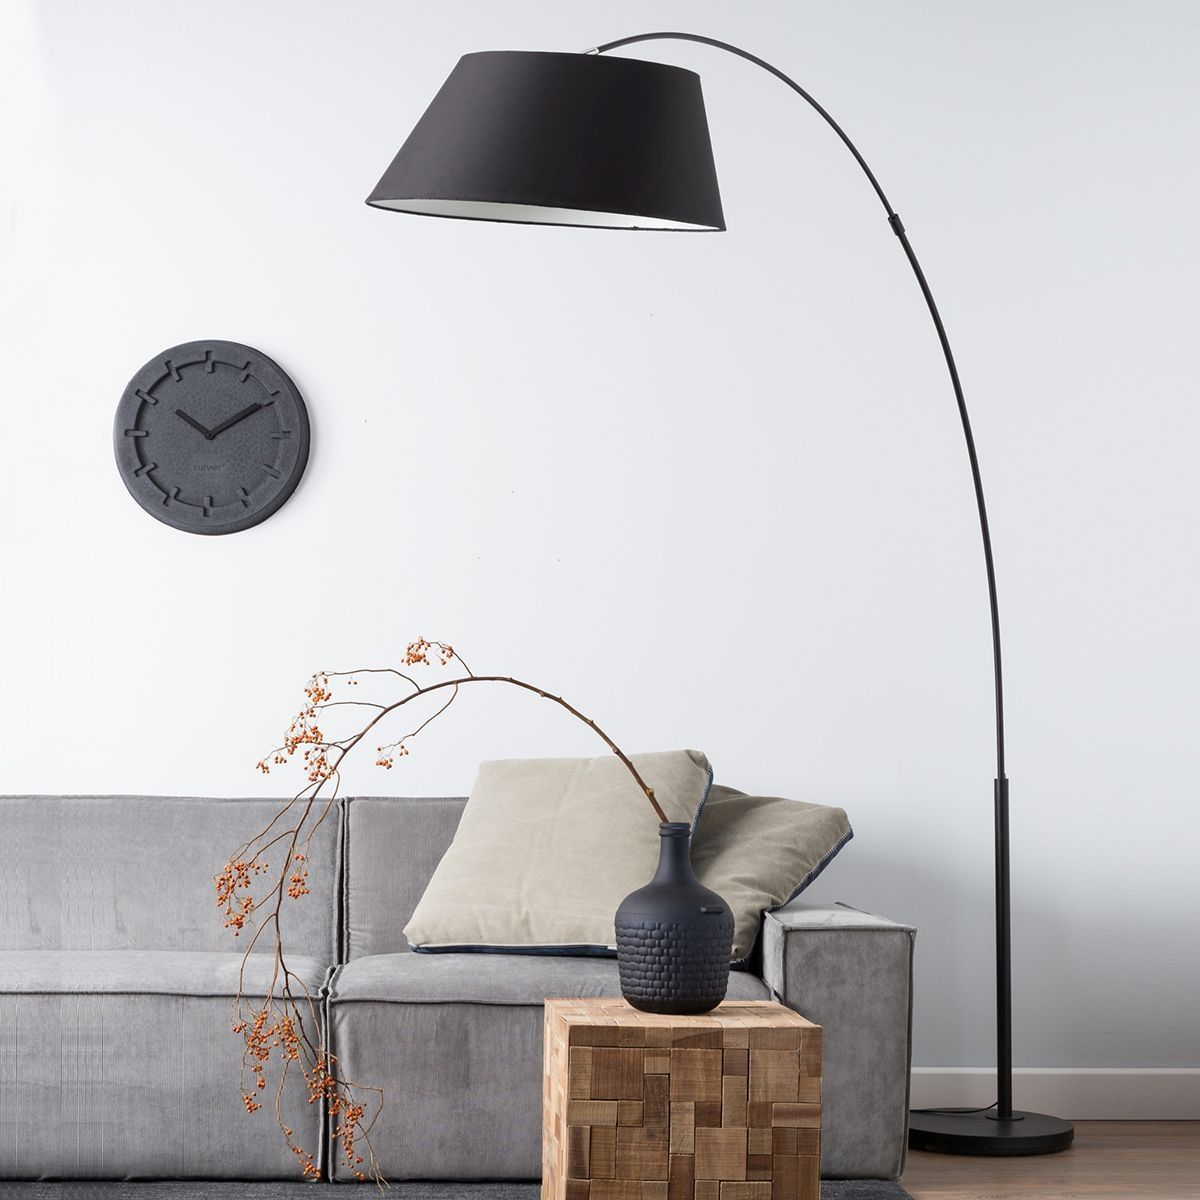 10 Contemporary Floor Lamp Design Ideas To Inspire You Matchness Com Modern Arc Floor Lamp Lamps Living Room Overhanging Floor Lamp